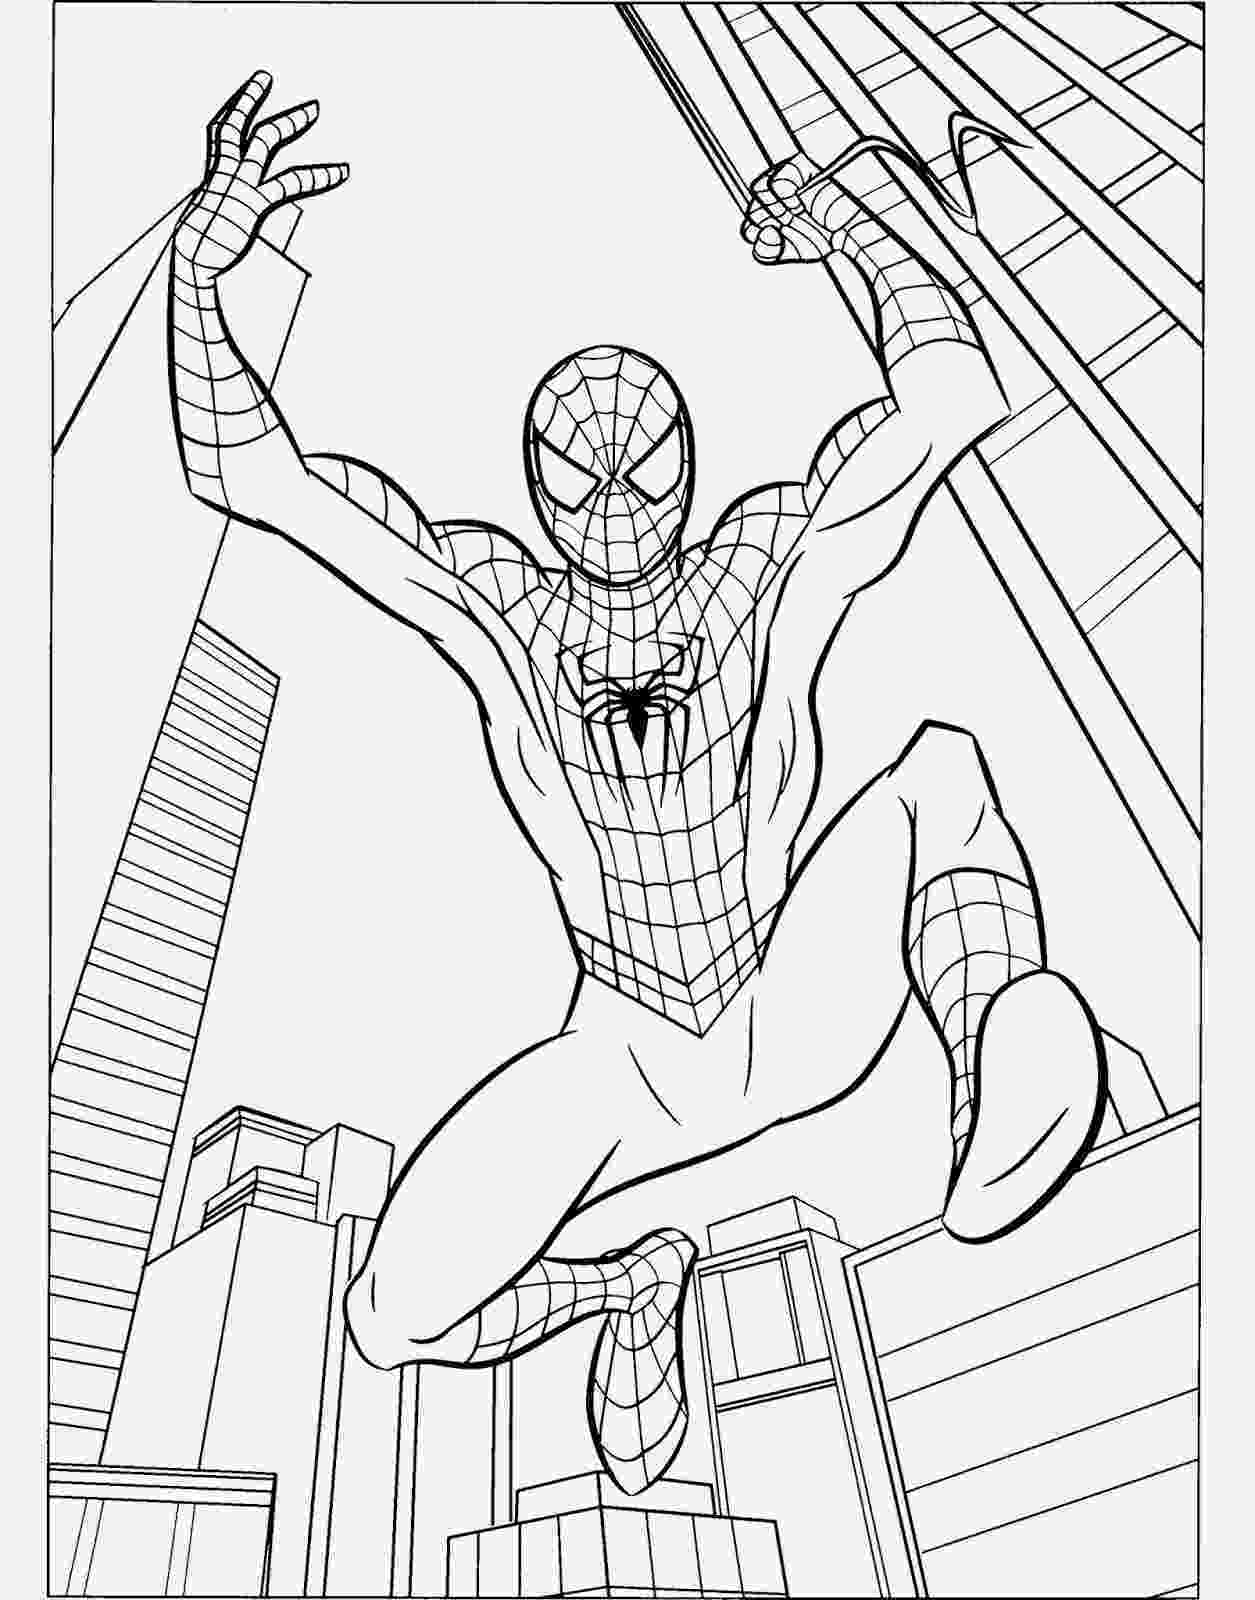 free printable spiderman coloring pages coloring pages spiderman free printable coloring pages spiderman coloring printable pages free